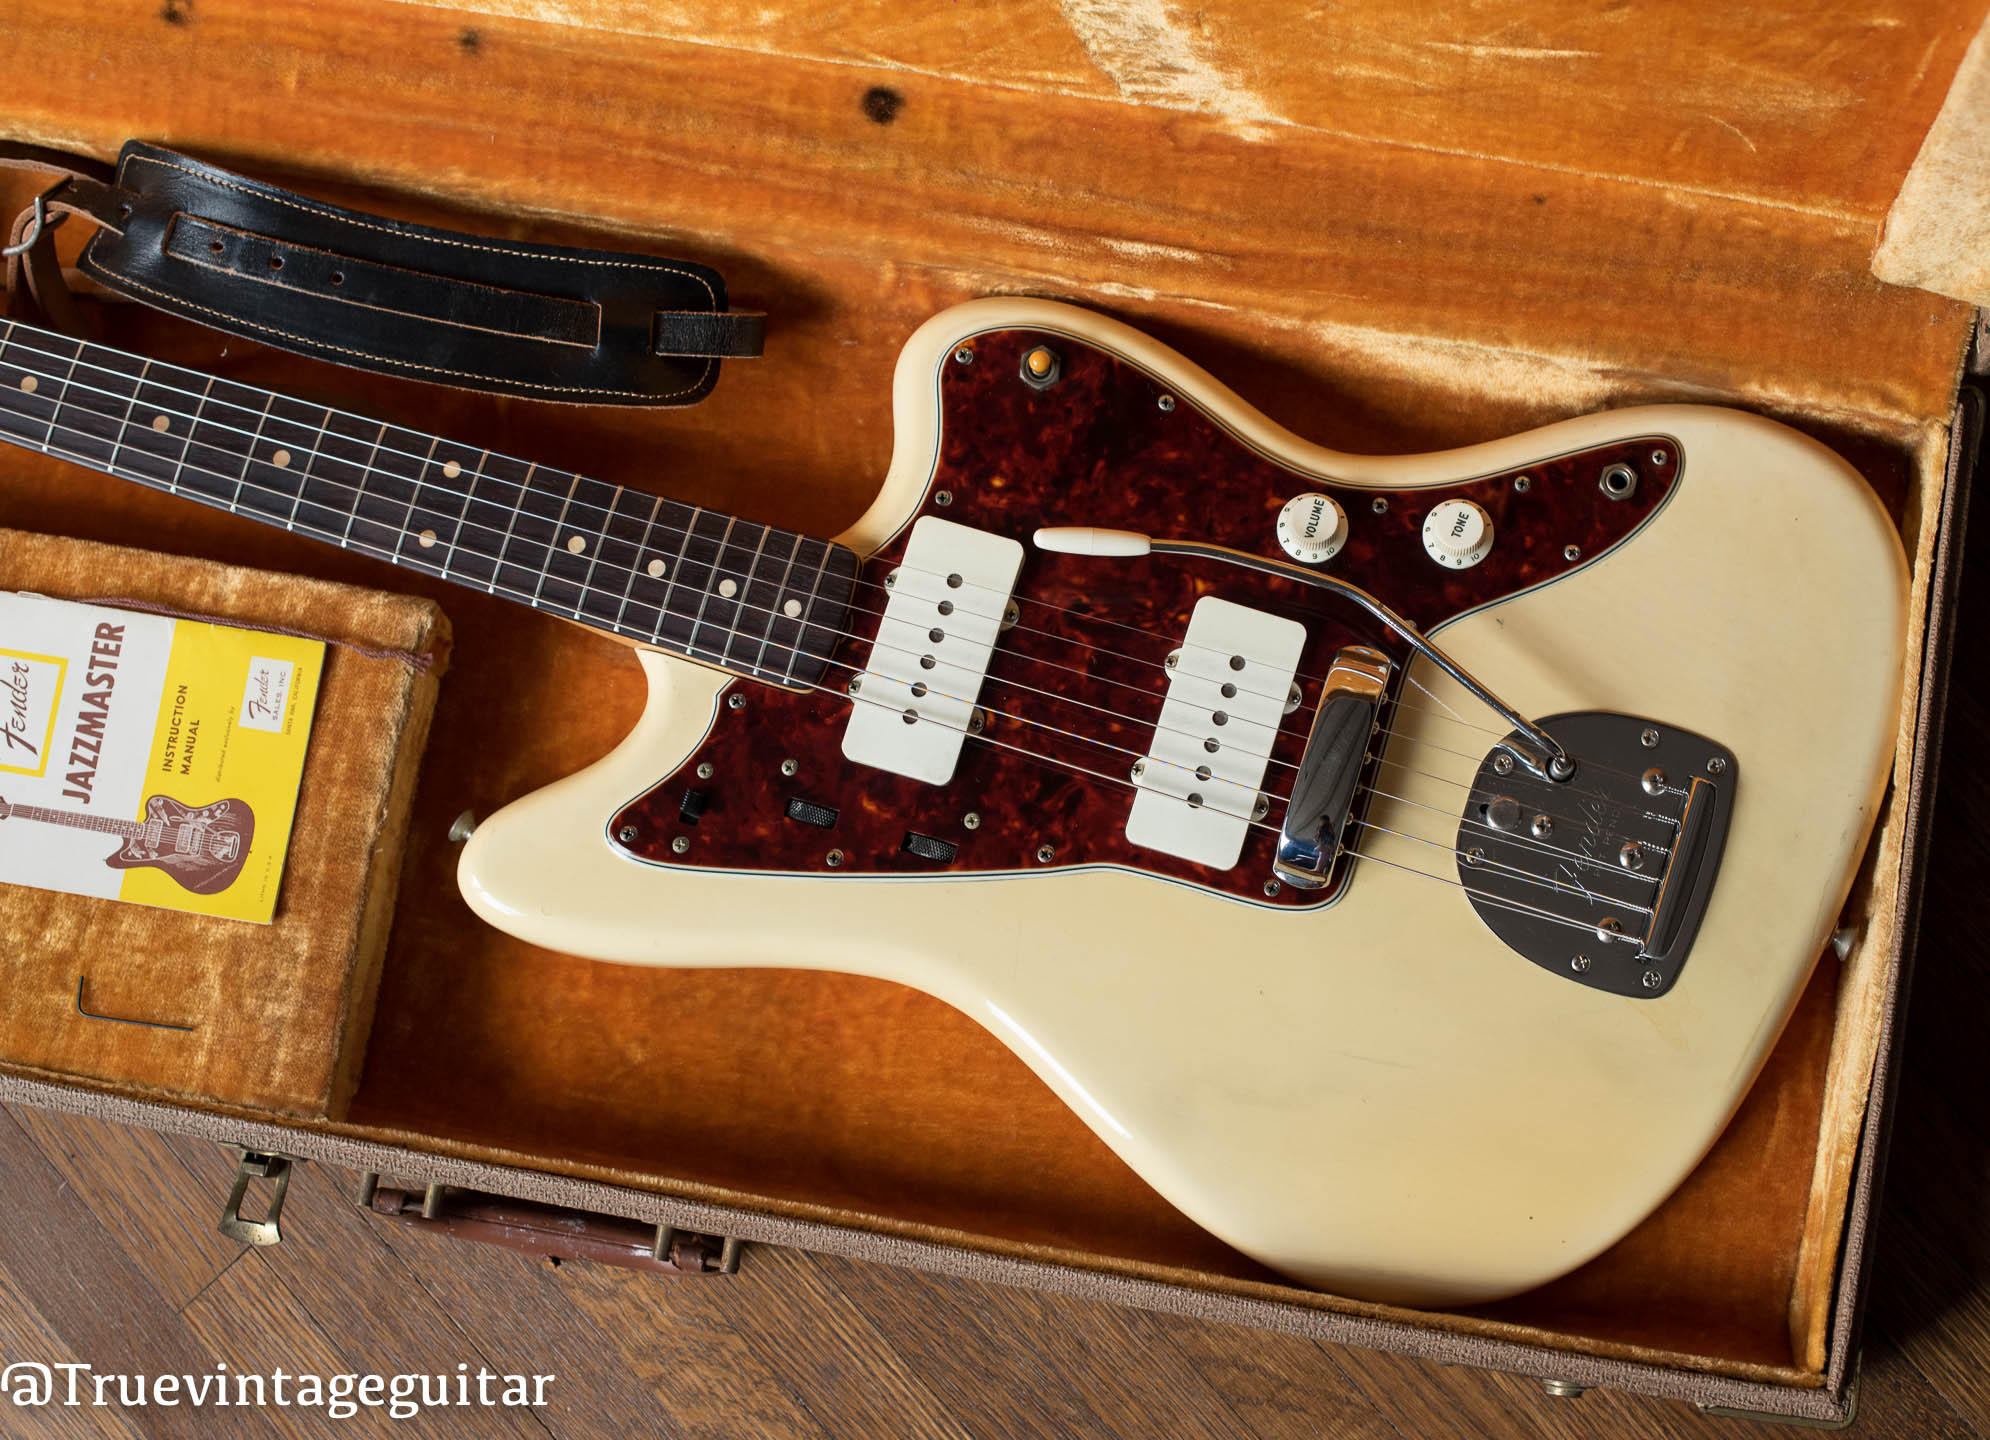 How to date vintage Fender Jazzmaster electric guitar